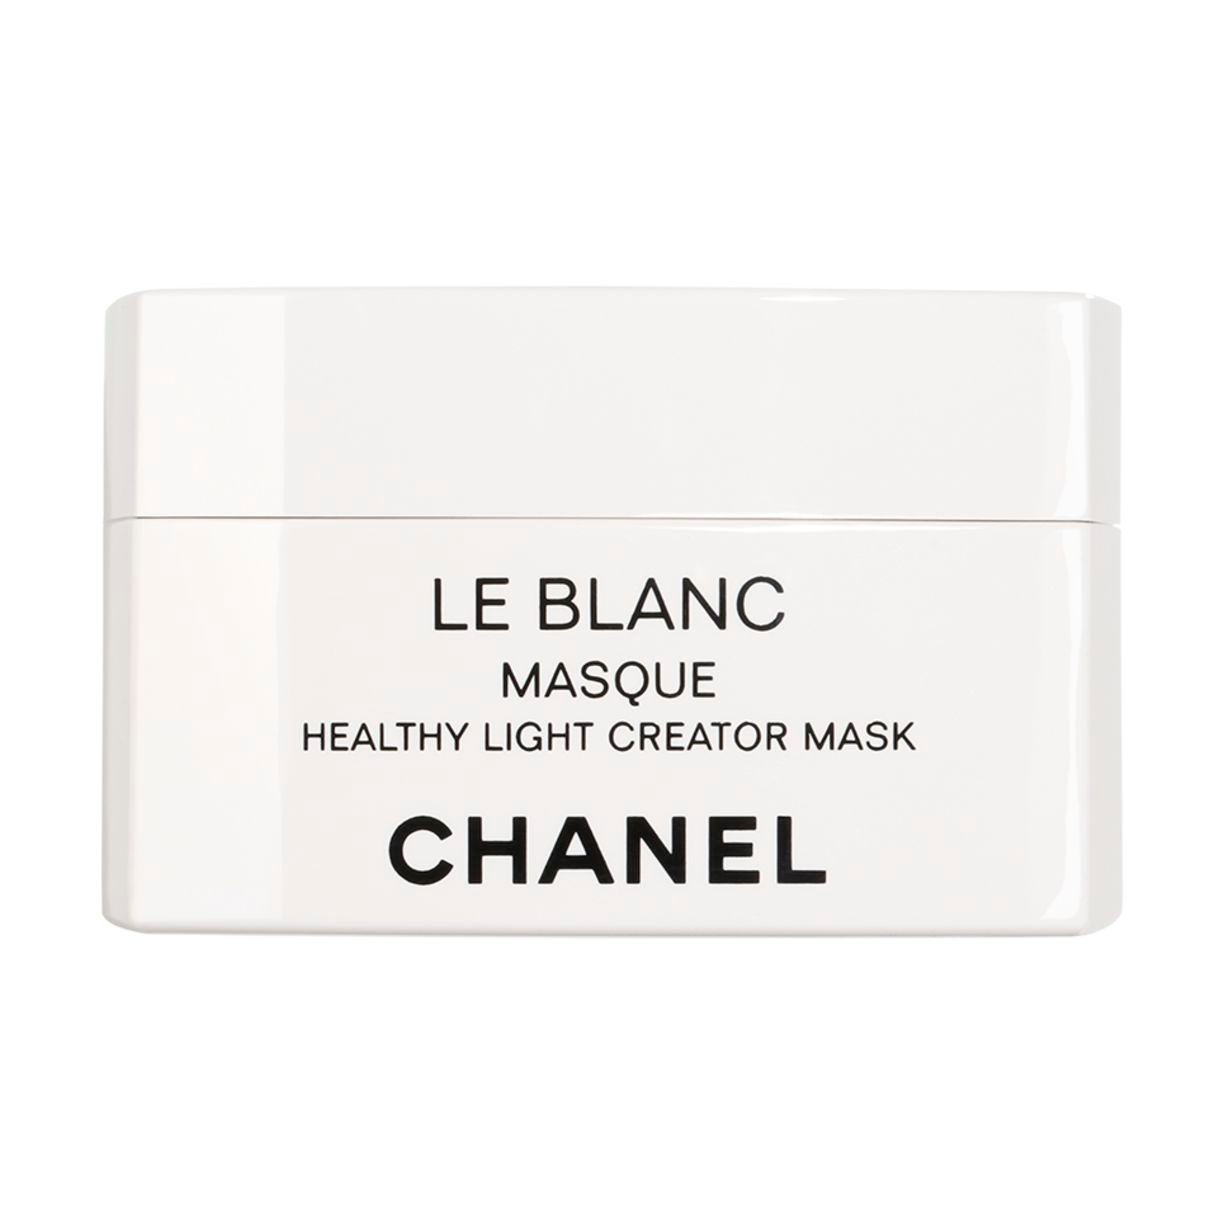 LE BLANC MASQUE HEALTHY LIGHT CREATOR MASK REVITALISEREND - VERHELDEREND - HERSTELLEND